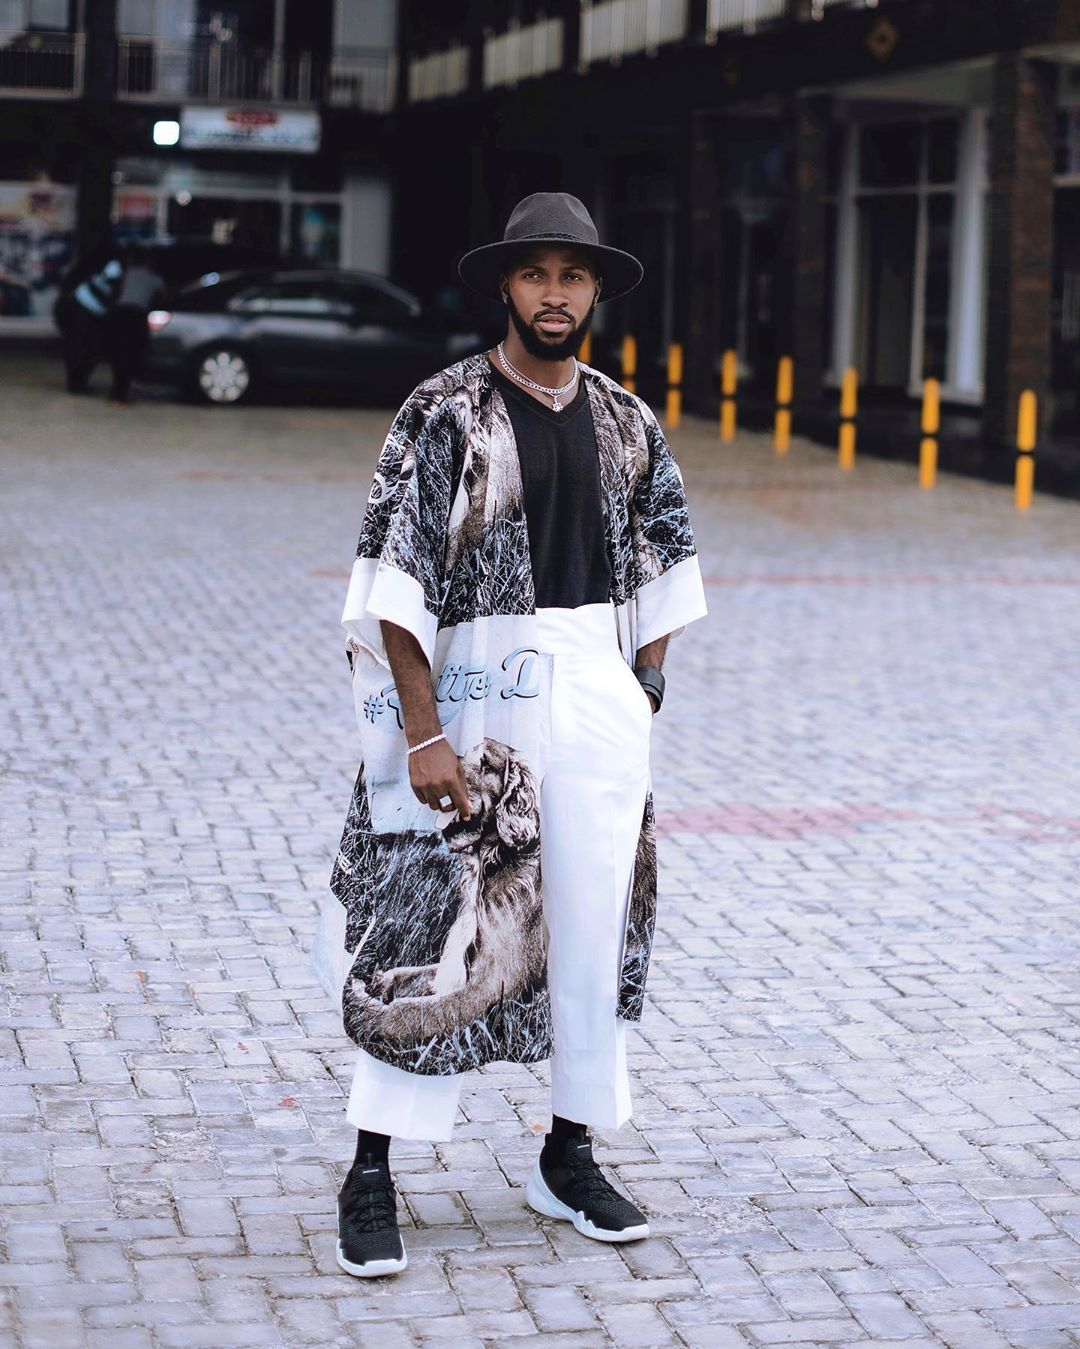 hombres-africanos-famosos-fashion-style-africa-men-best-dressed-style-rave